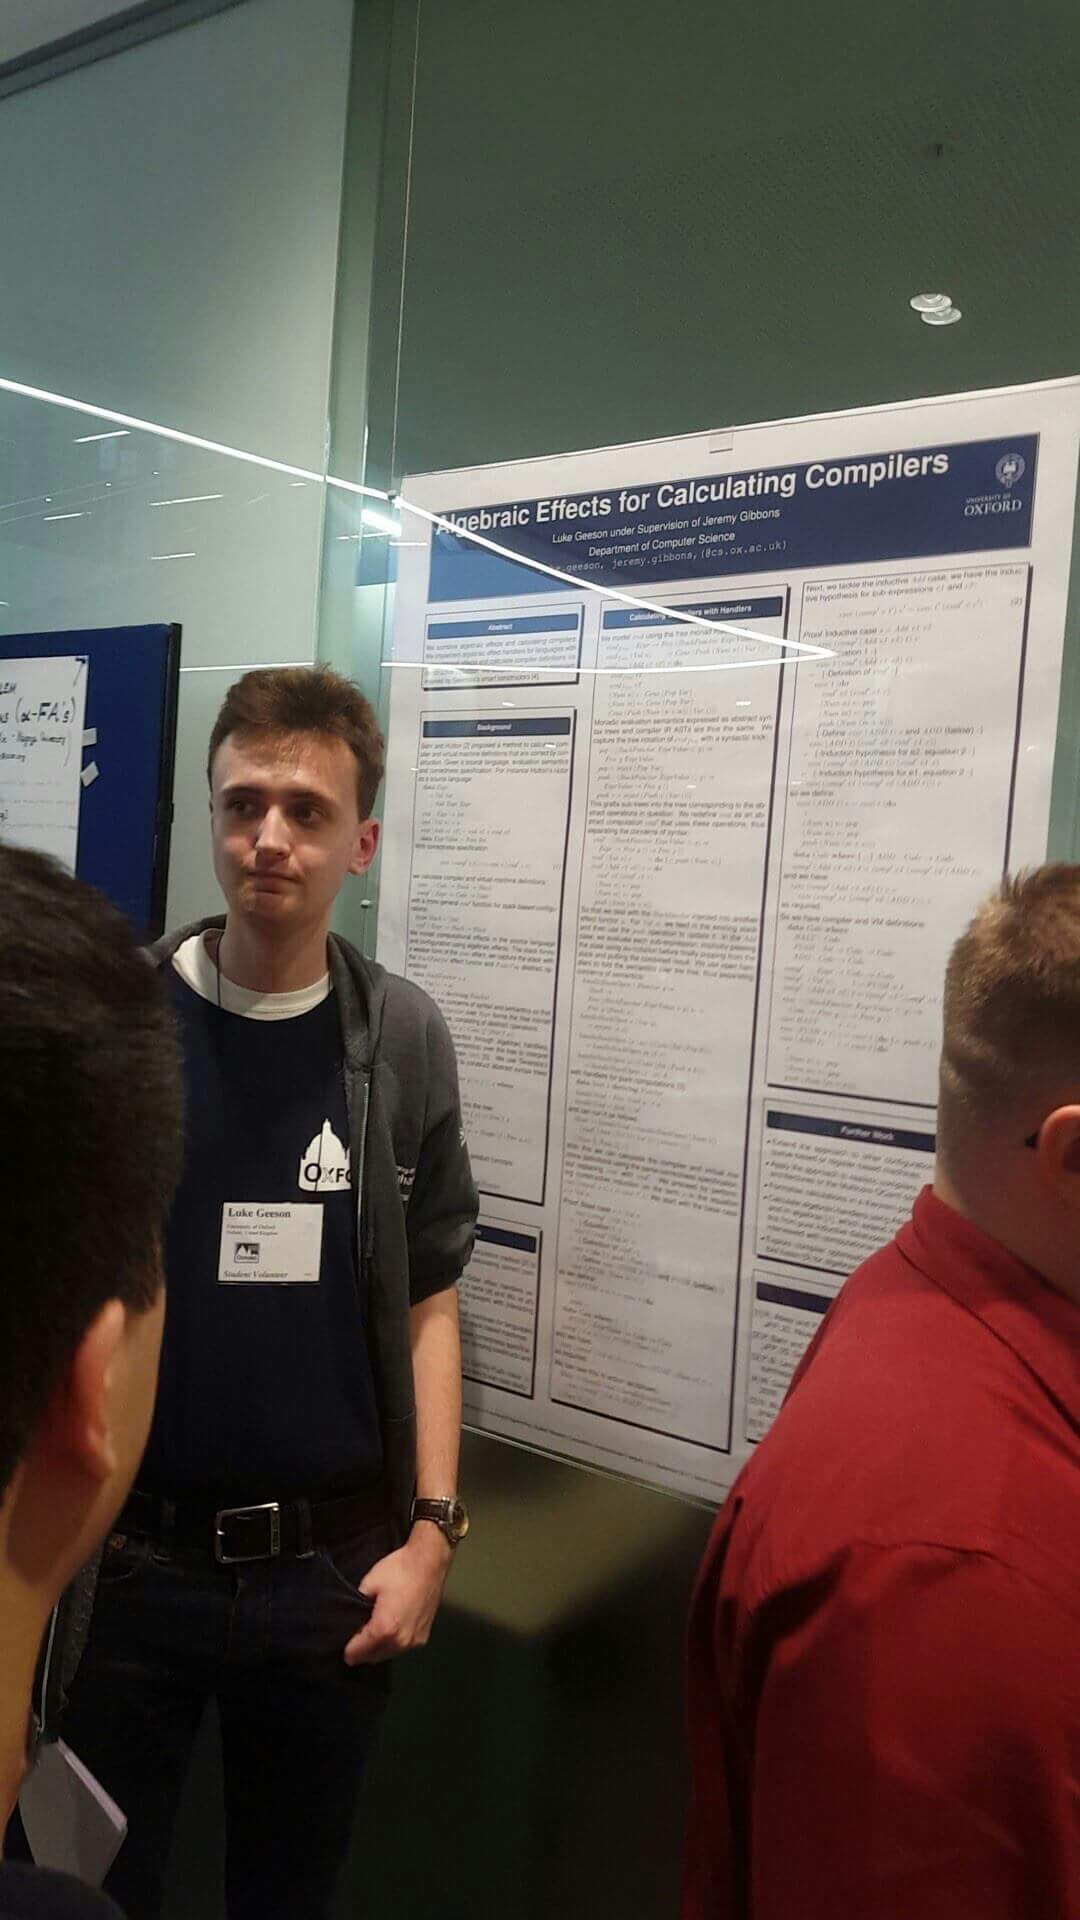 Me presenting at the ICFP Student Research Competition on the first day of ICFP